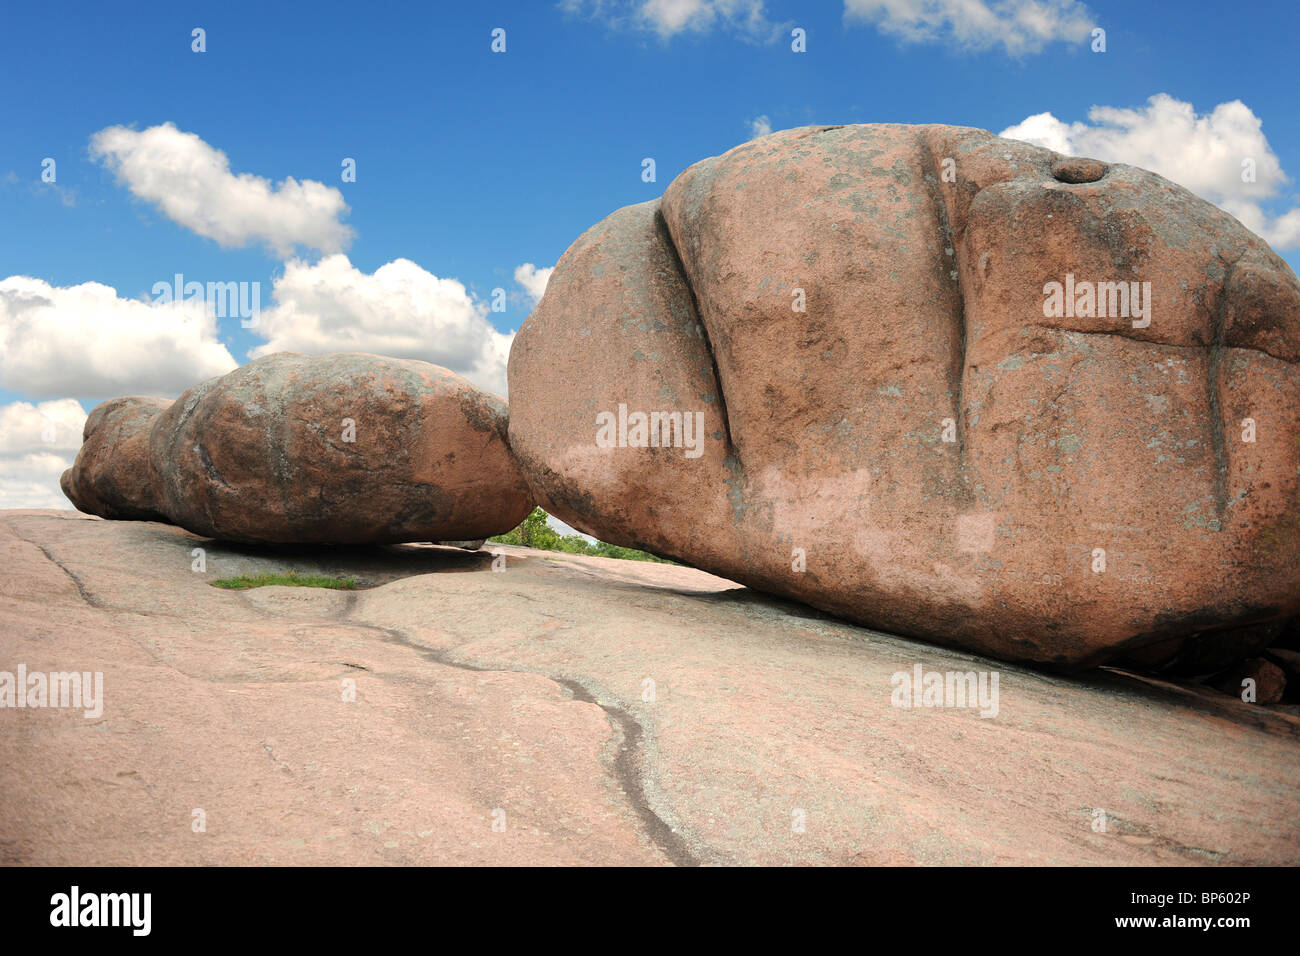 Rock formations at Elephant Rock in Missouri - Stock Image